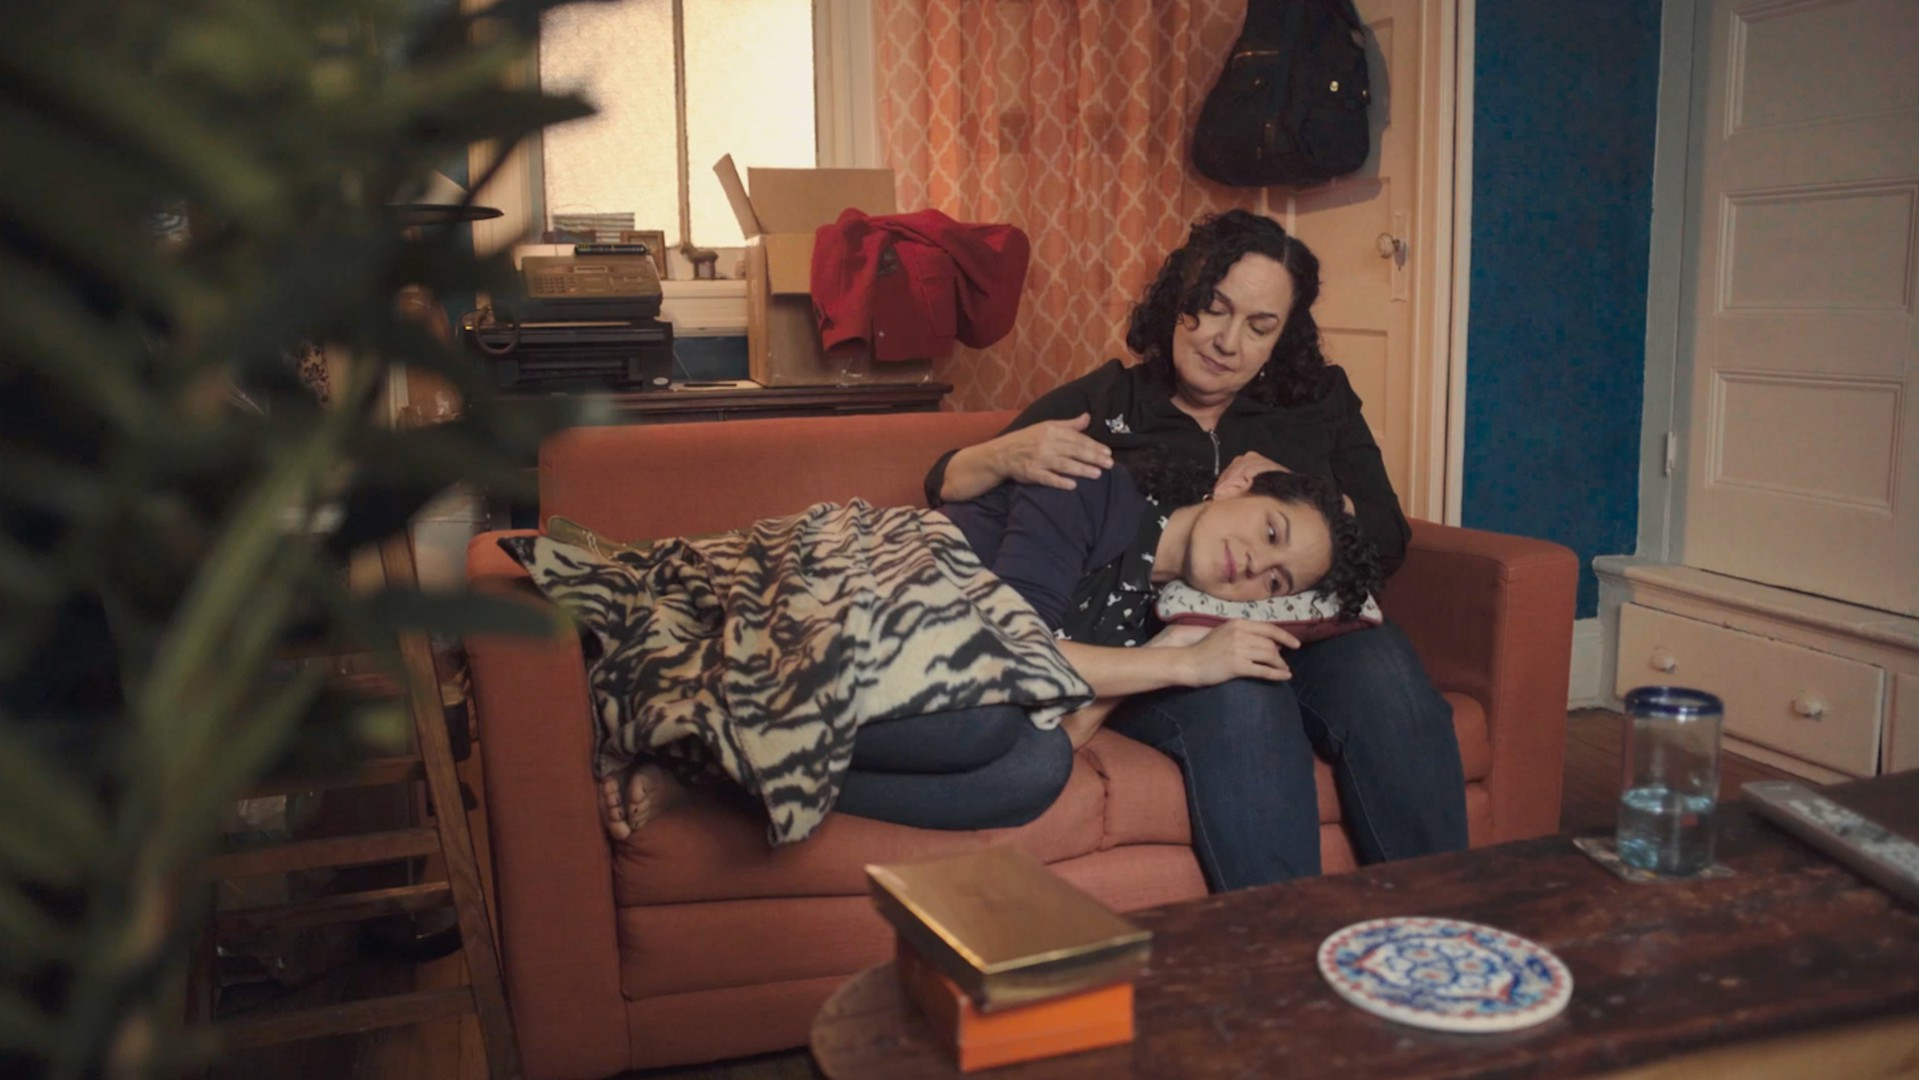 Fluff - Zoe Salicrup Junco — Filmmaker In AttendanceSynopsis: The loss of a dear family member forces a young woman and her mother to close a chapter in their lives they haven't quite let go of yetRT: 7:542017, U.S. / Maine + New England Premiere